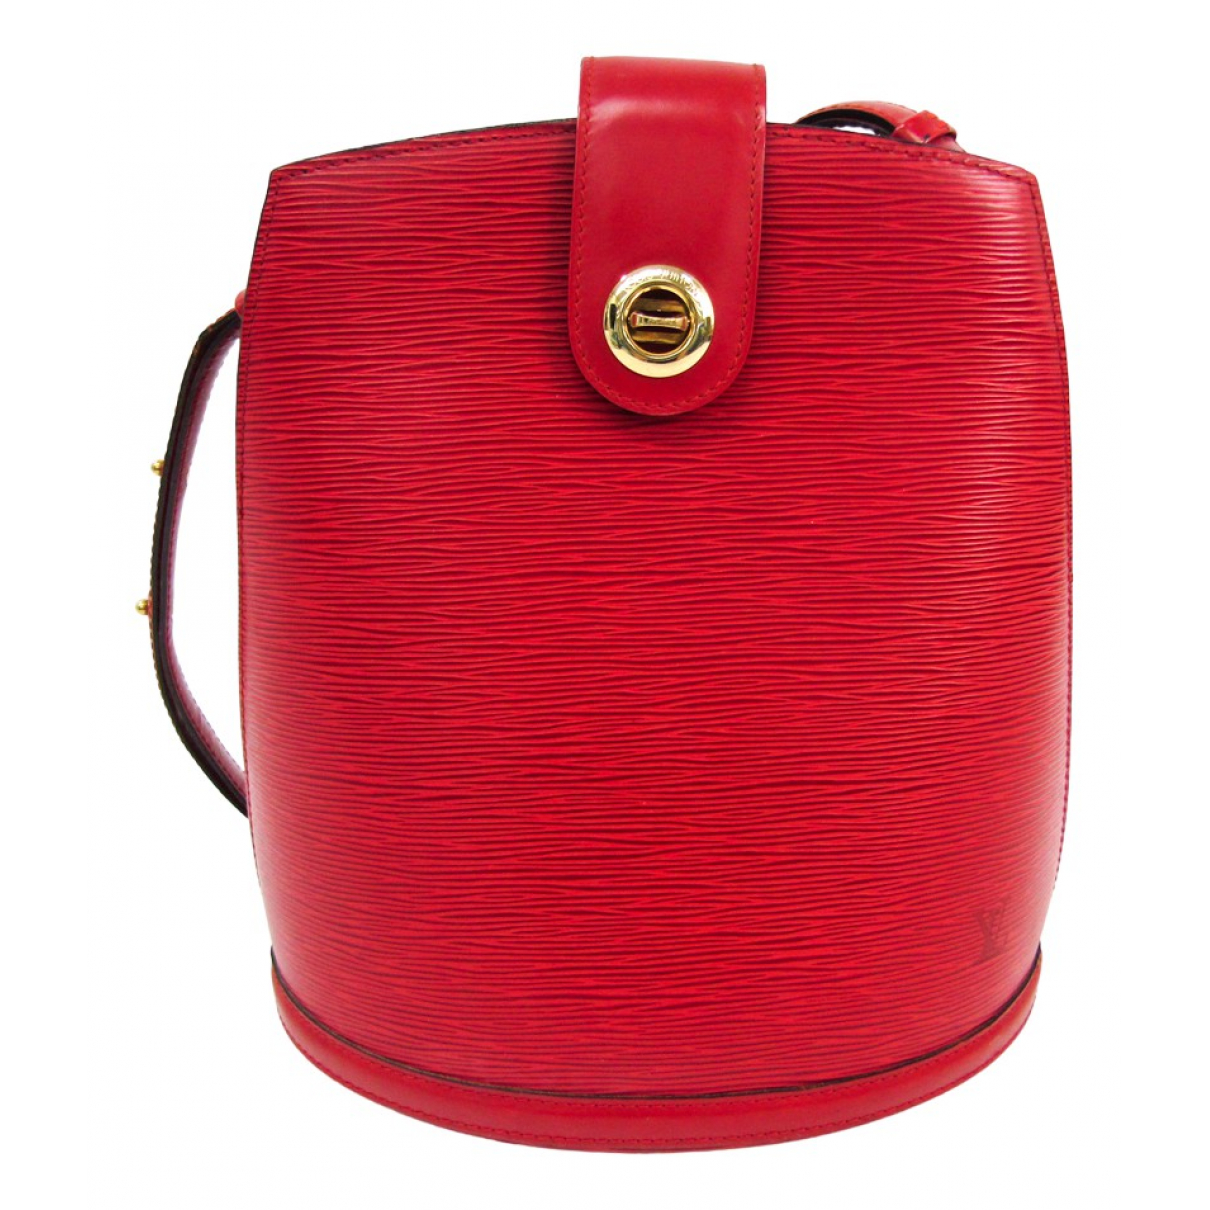 Louis Vuitton Cluny Vintage Red Leather handbag for Women \N